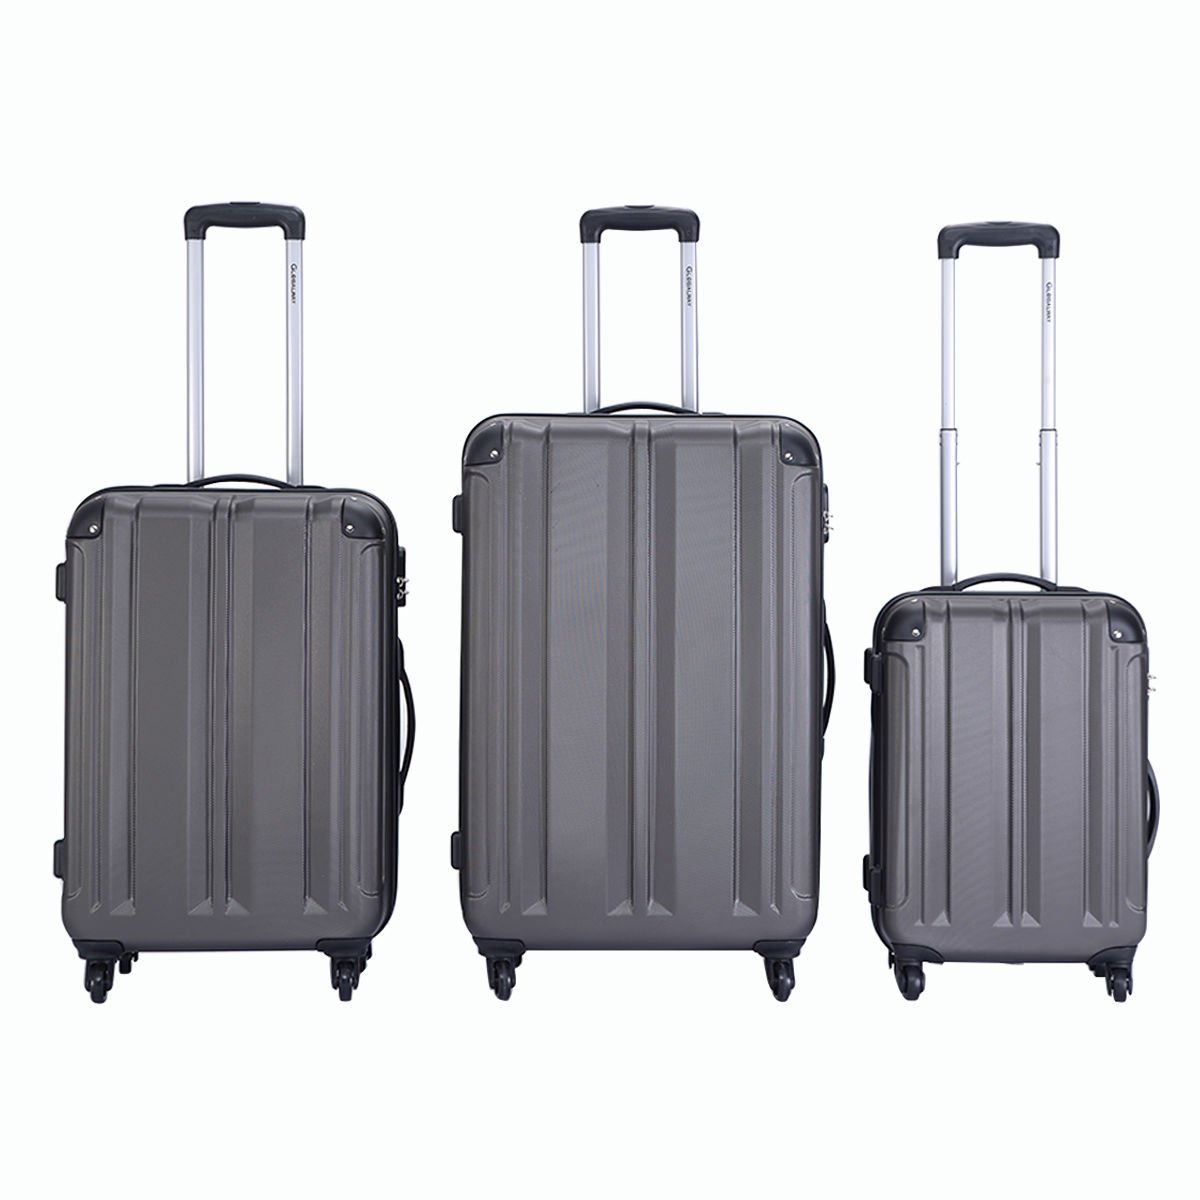 Goplus 3 Pcs 20'' 24'' 28'' Luggage Travel Set Bag ABS Trolley Suitcase Gray